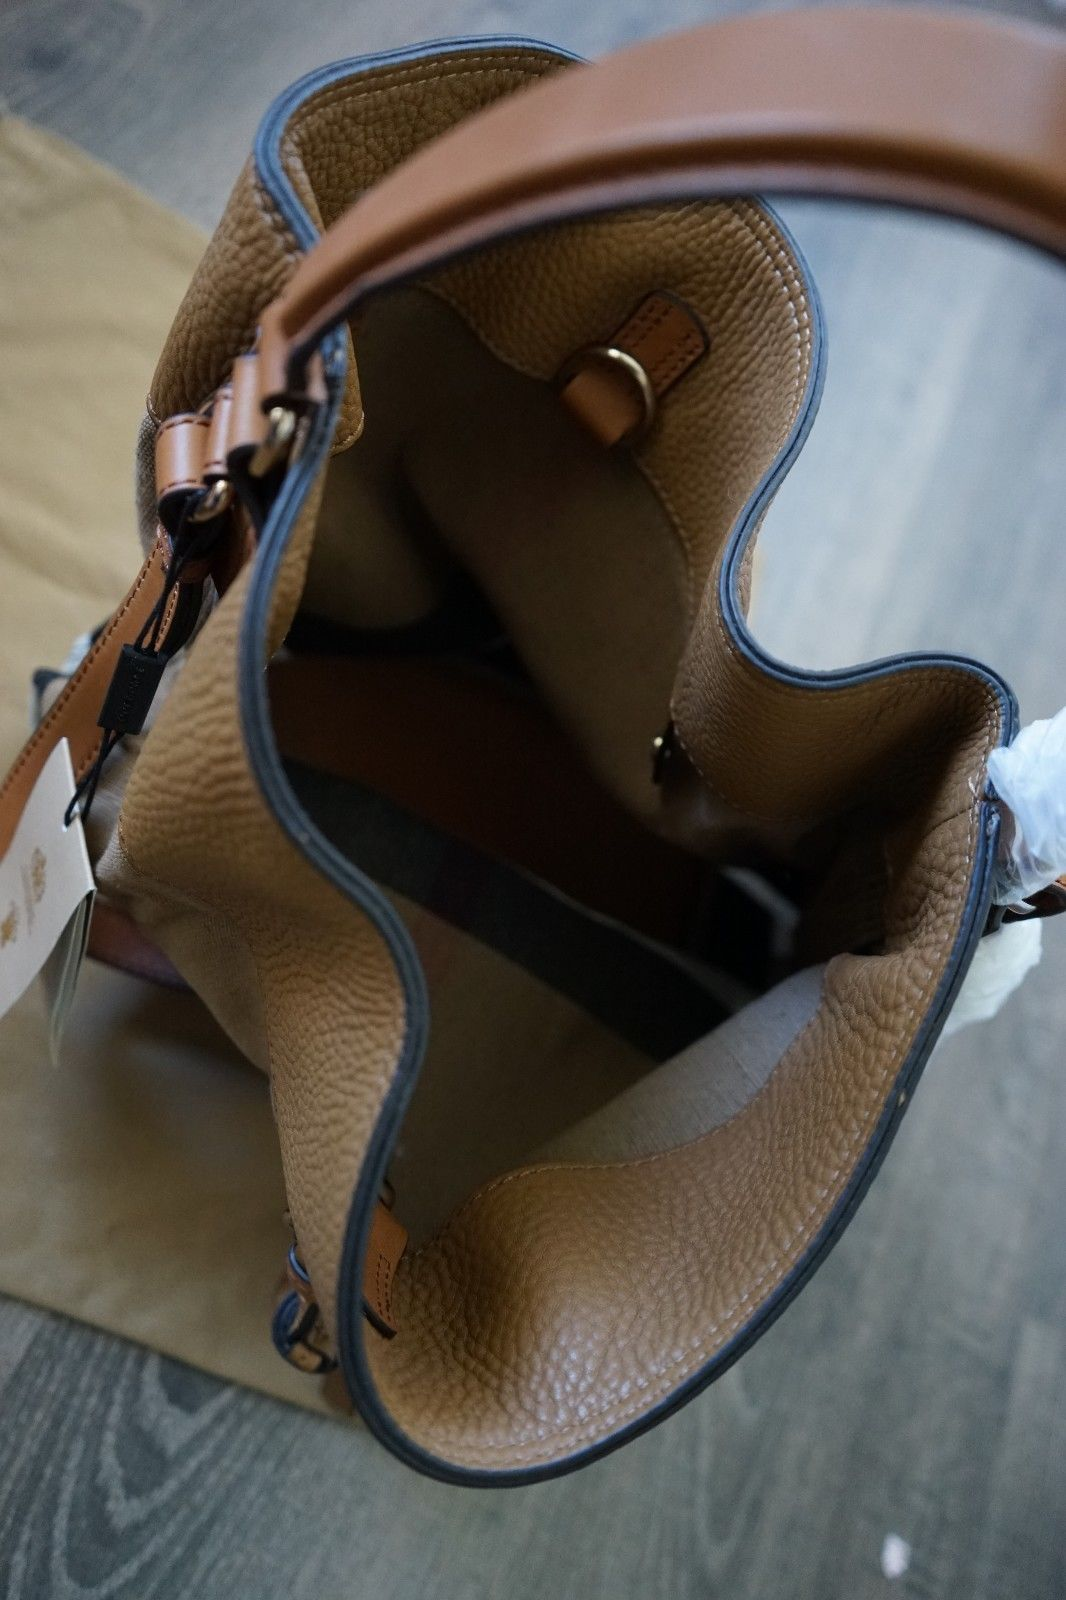 ... Load image into Gallery viewer, Authentic Burberry Medium Ashby in  Canvas Check and Leather Hobo ... 5dd1340875